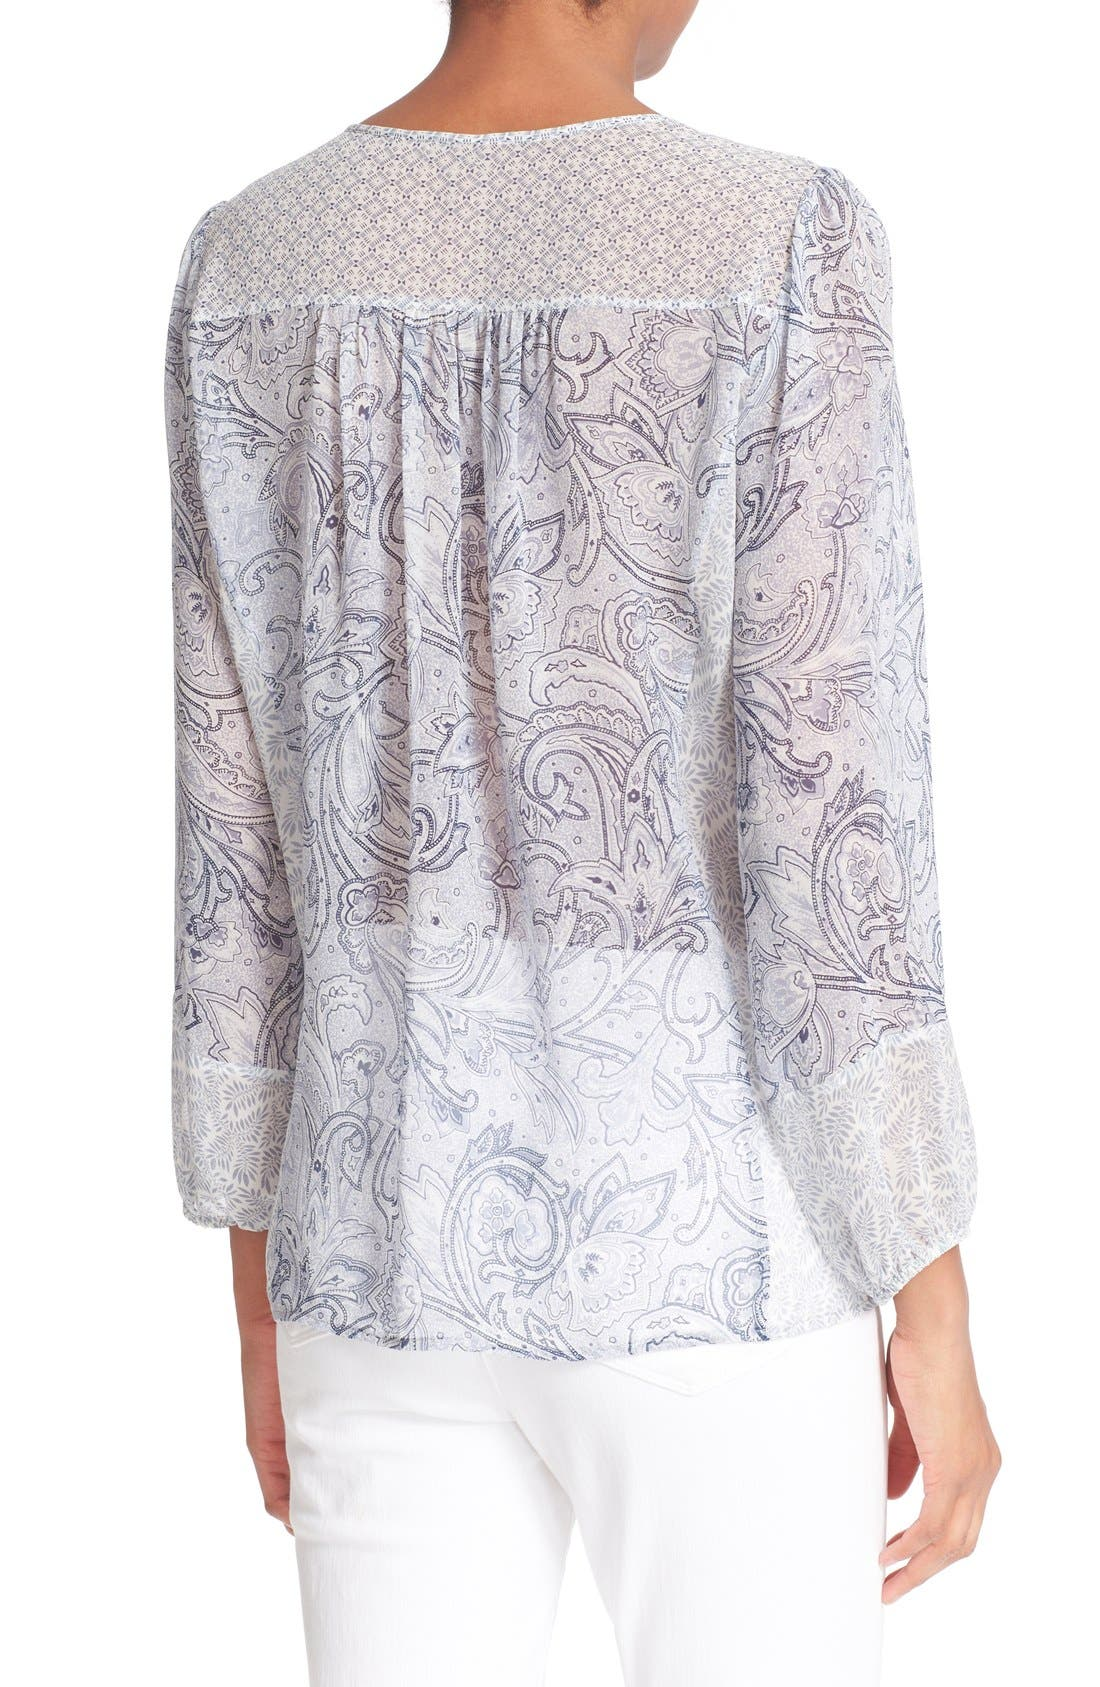 JOIE,                             'Acerila' Mixed Print Silk Peasant Top,                             Alternate thumbnail 3, color,                             430